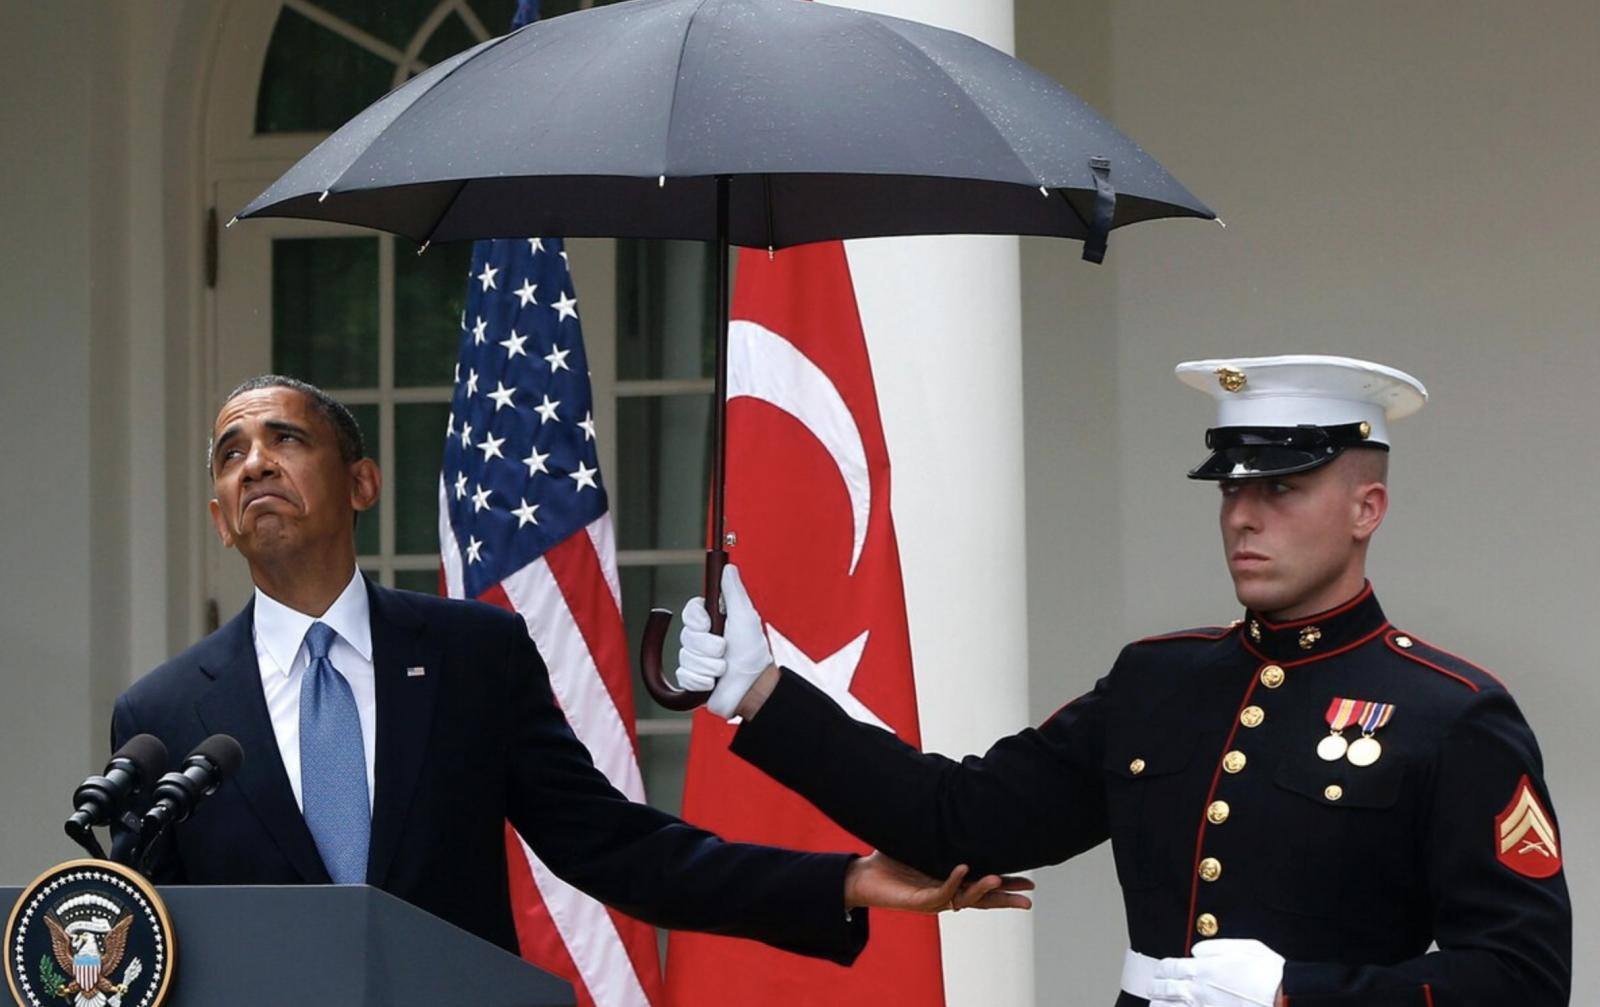 Umbrellas for male Marines, silver earrings for female Marines: Corps makes uniform changes